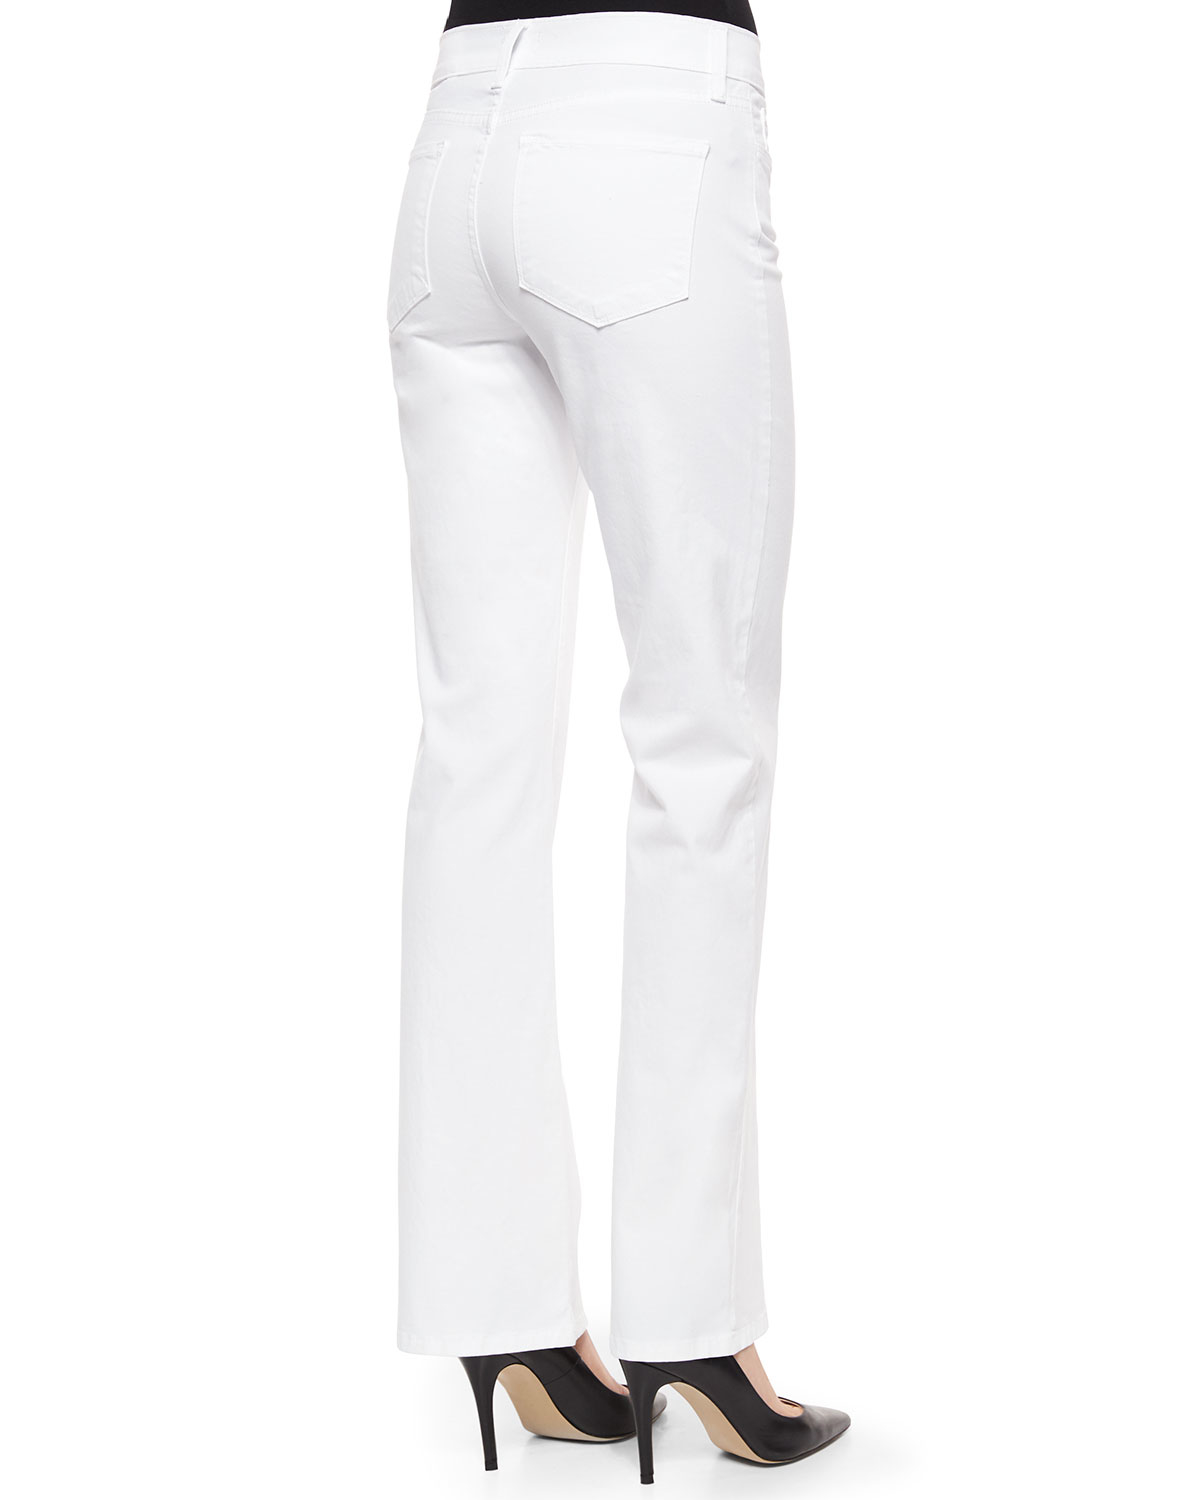 Nydj Sarah Pastel Boot-cut Jeans in White | Lyst